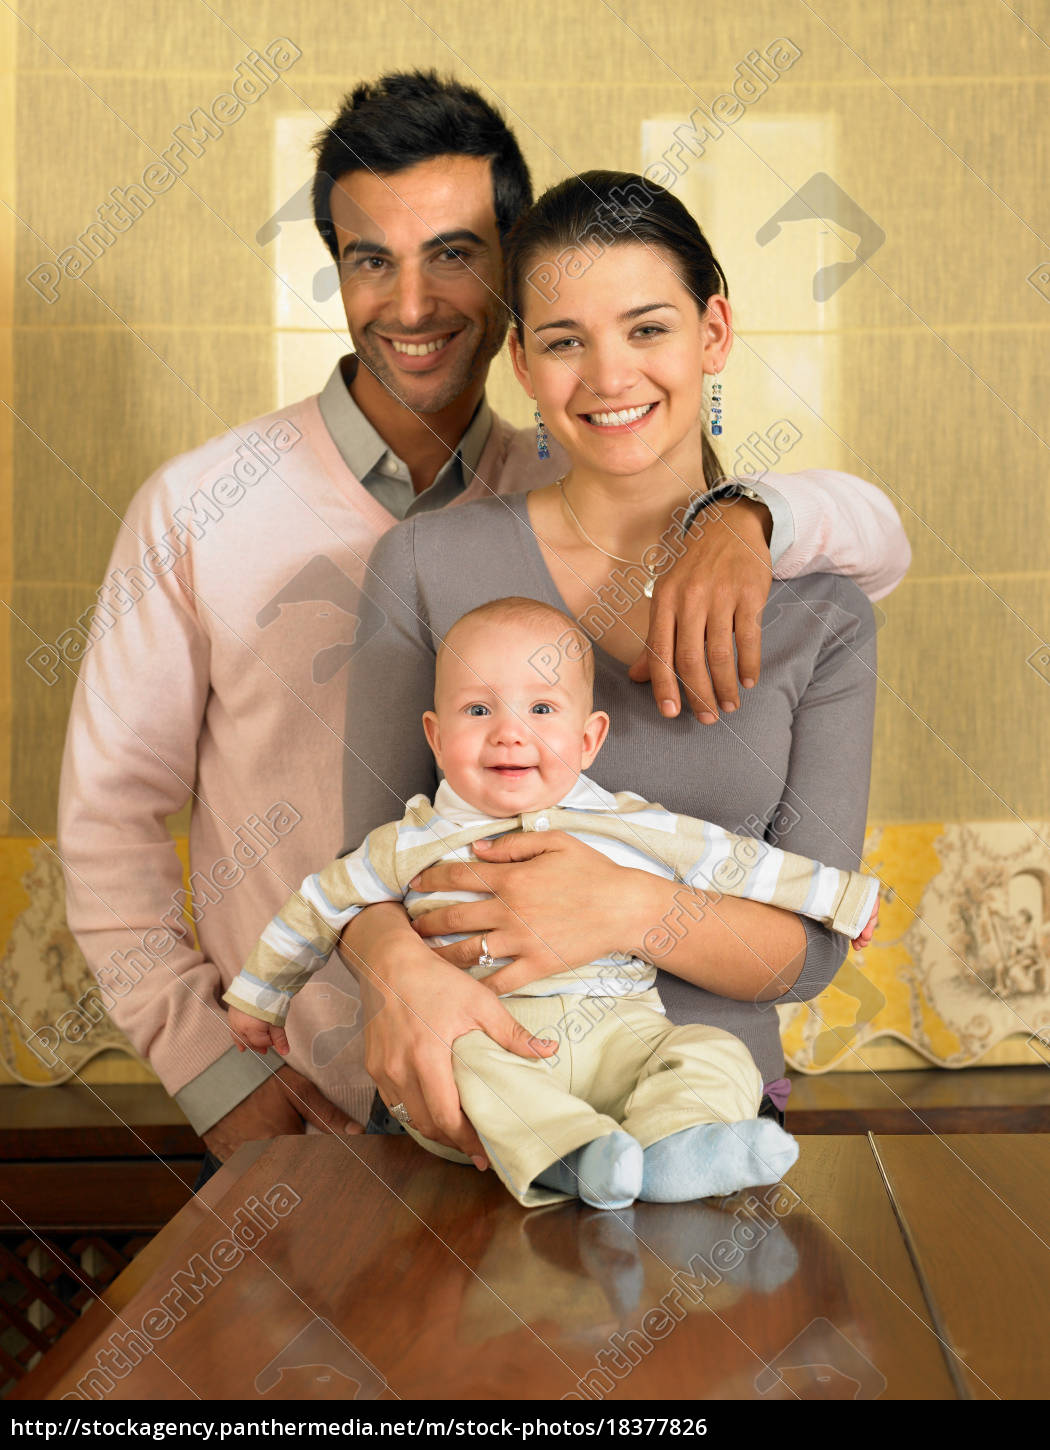 young, couple, and, baby, son, smiling - 18377826